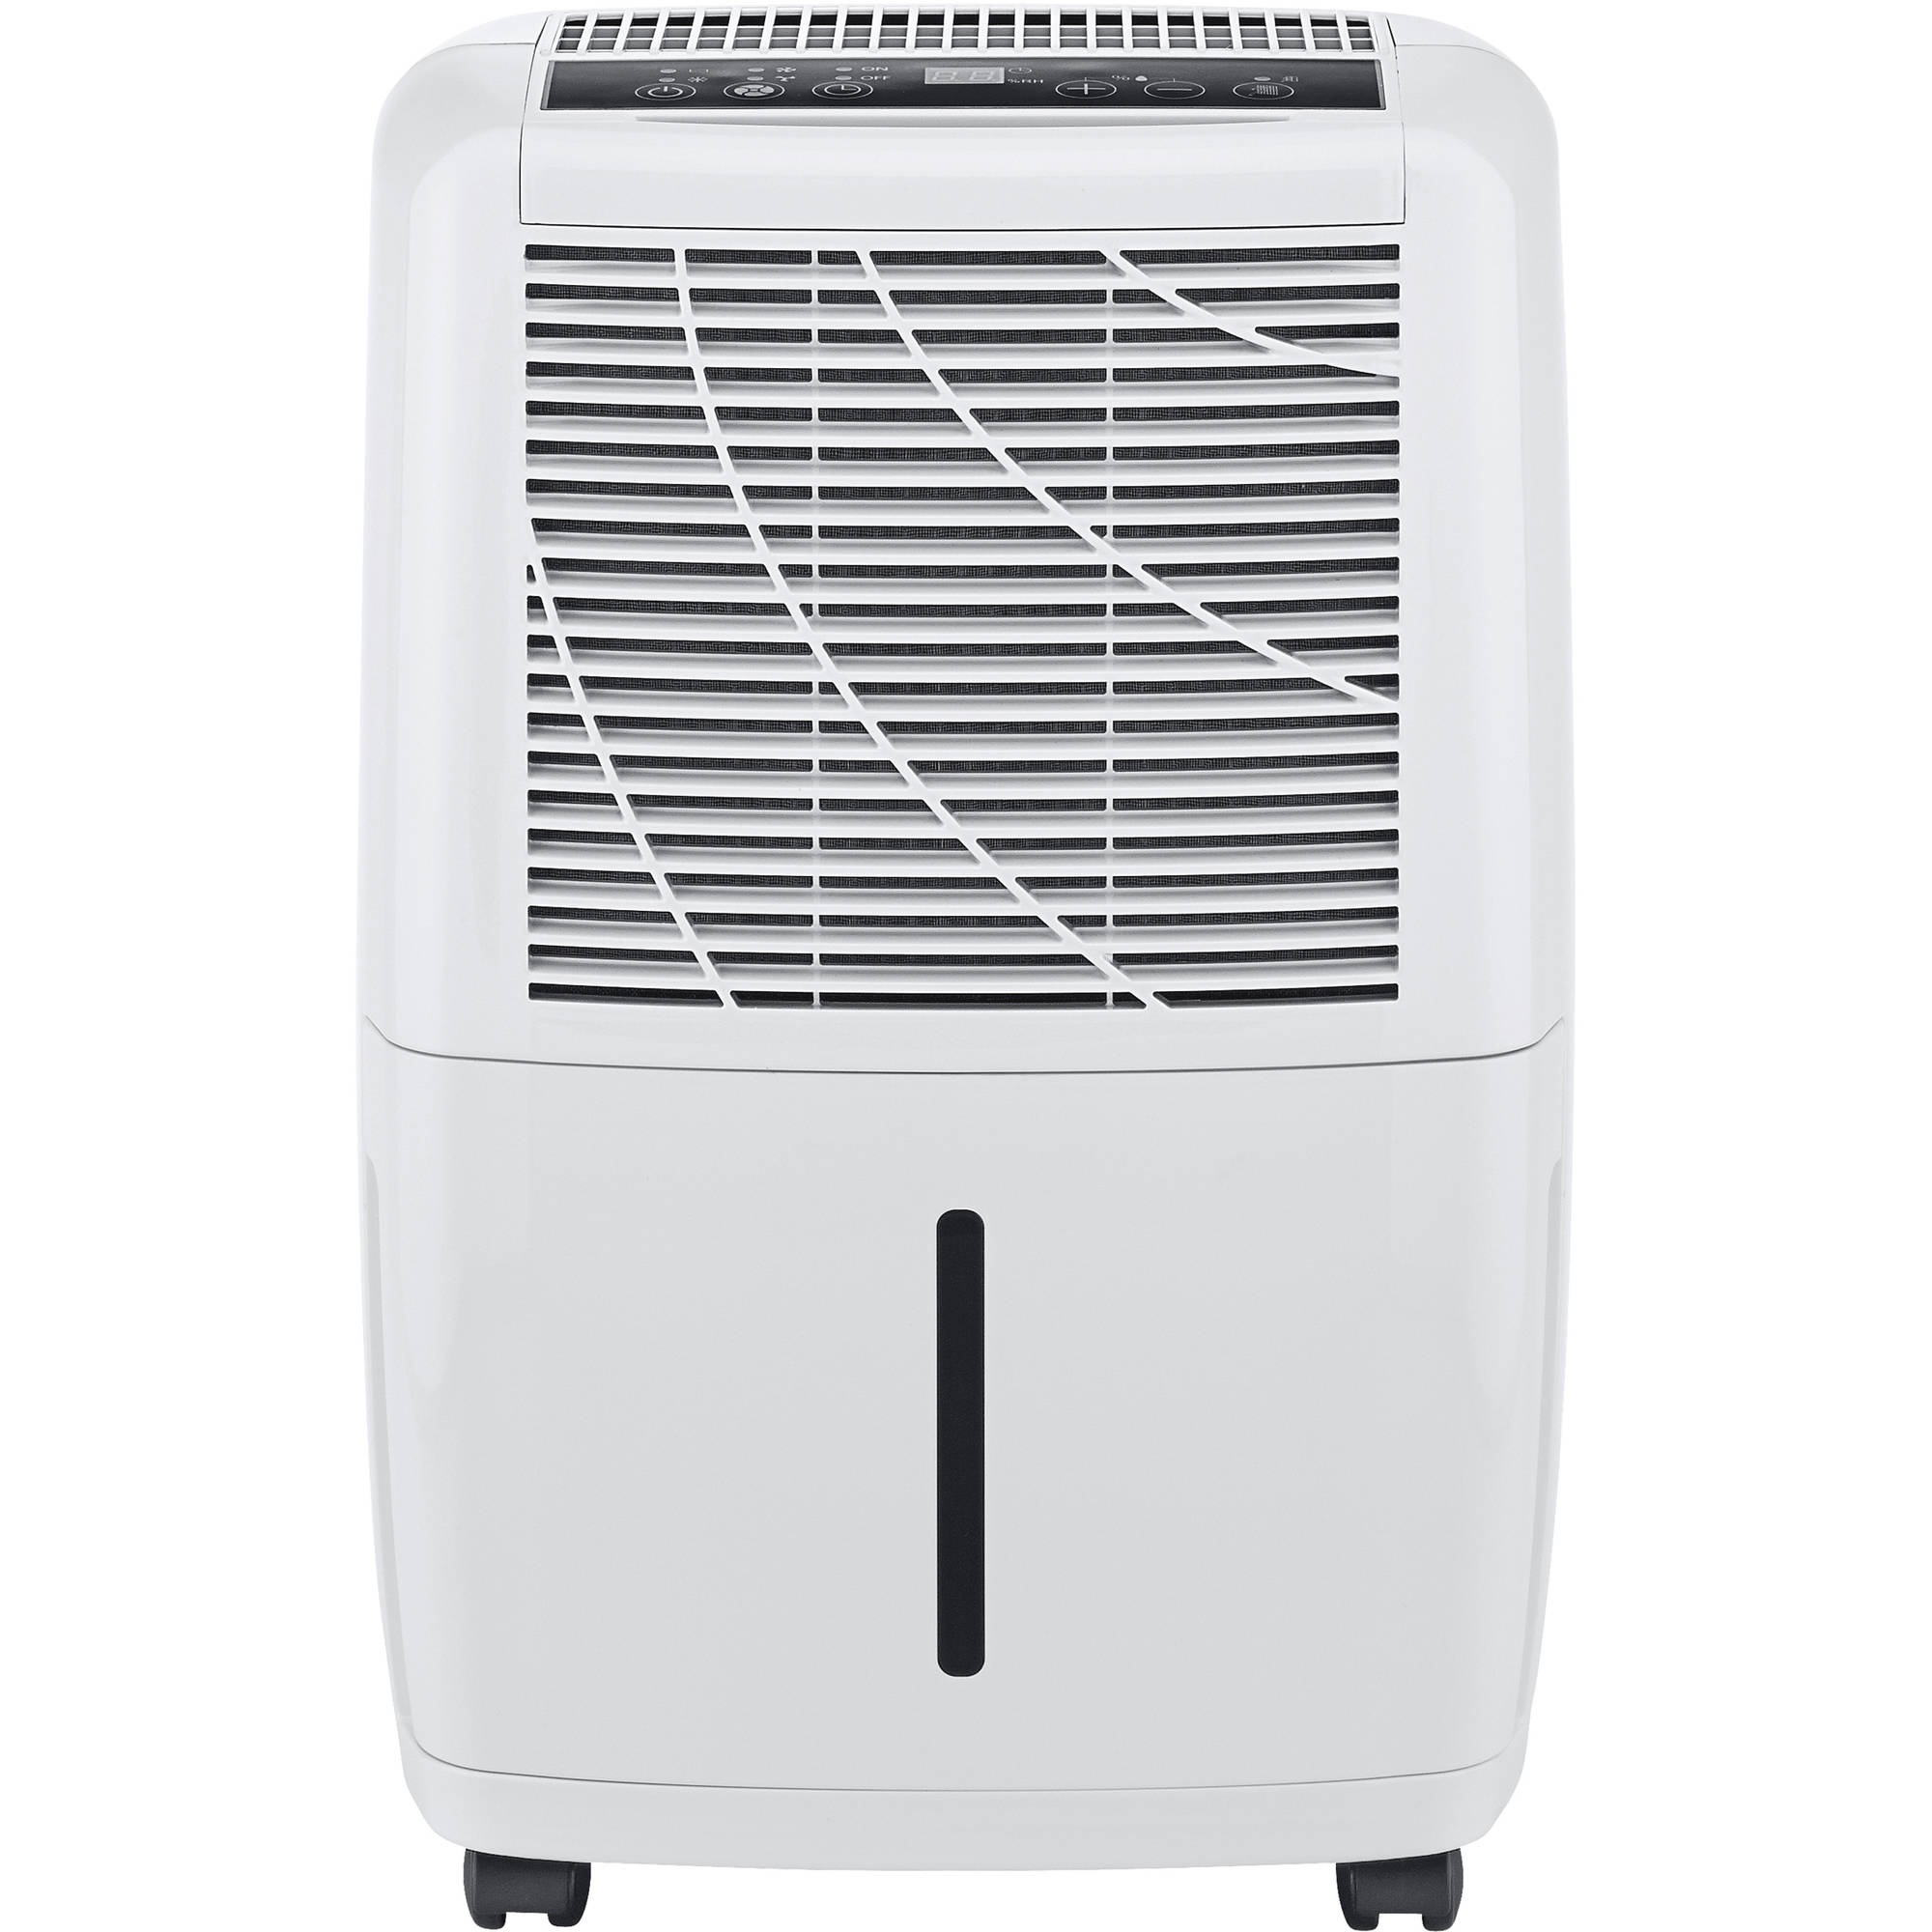 Haier HE30ERLEAB 30-Pint Dehumidifier White Factory Reconditioned